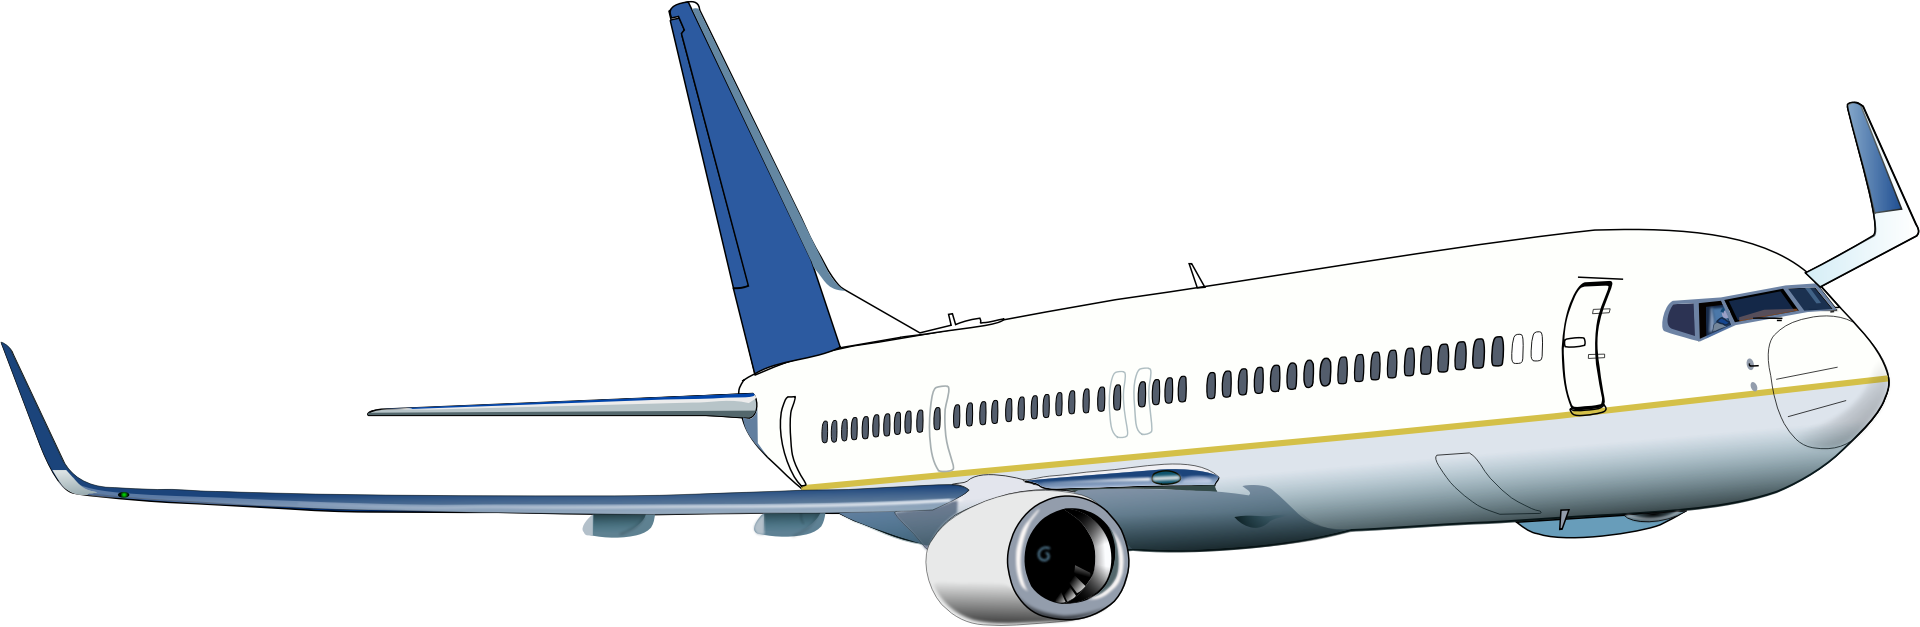 Boeing Clipart Clipart Suggest